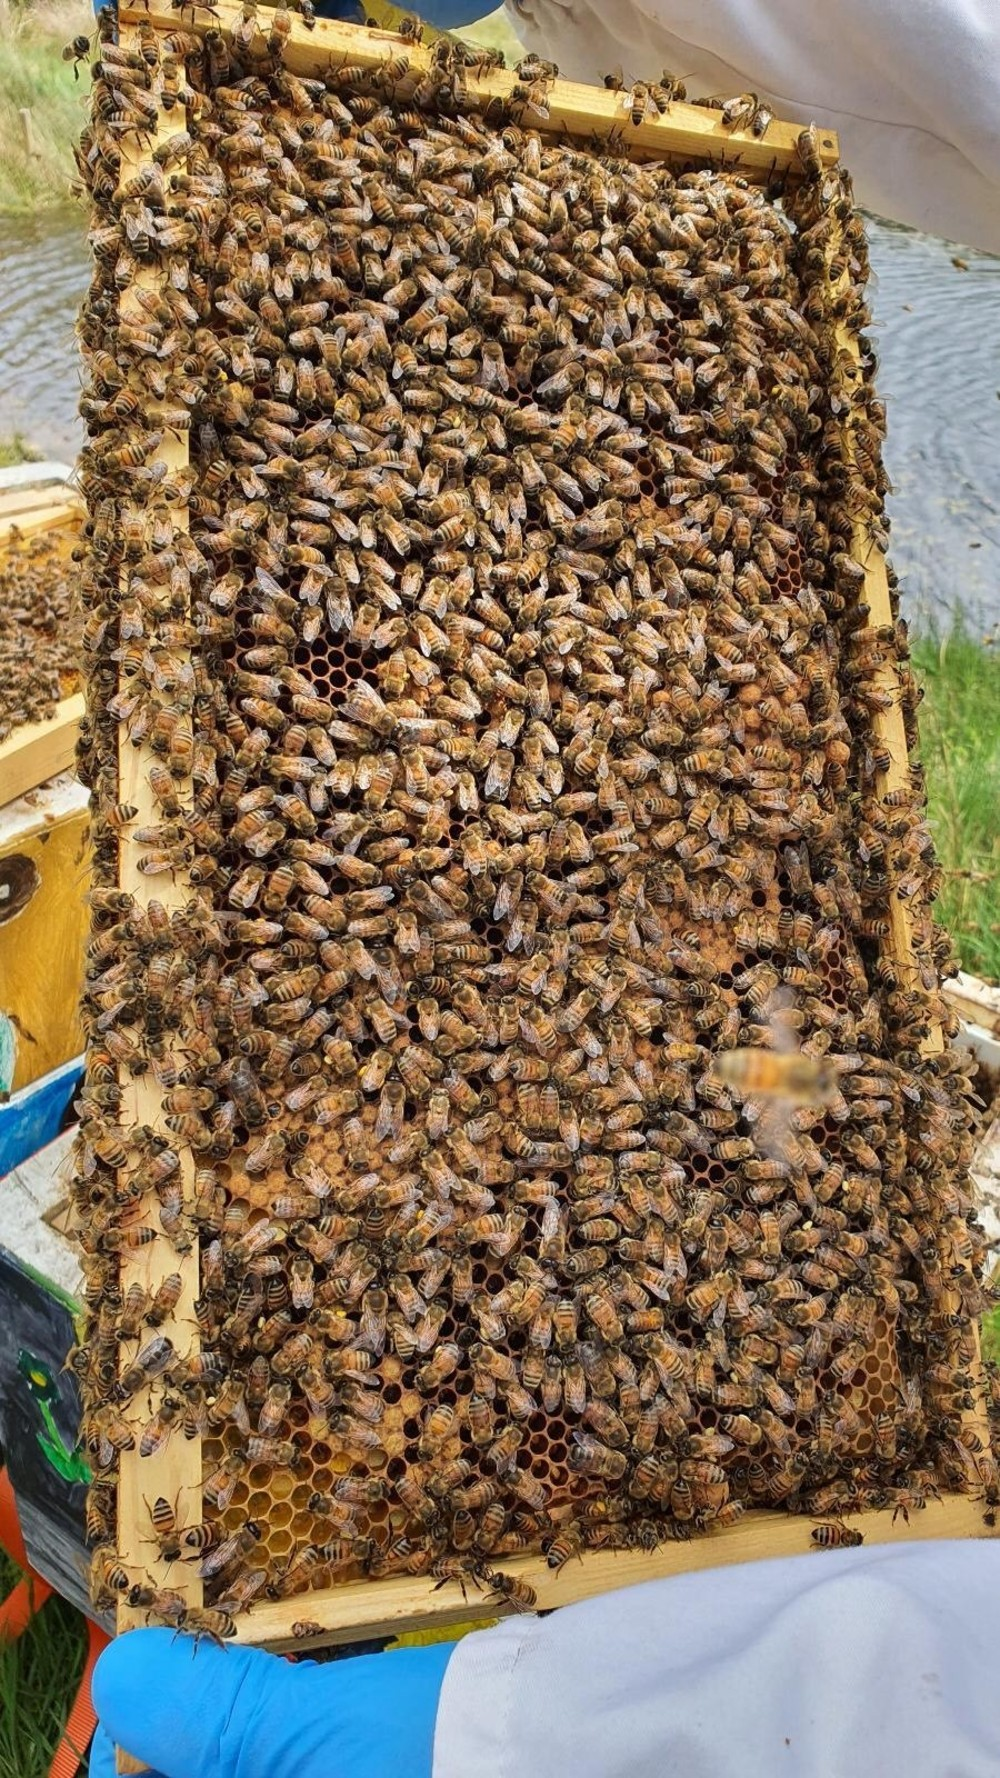 Picture of bees in a hive